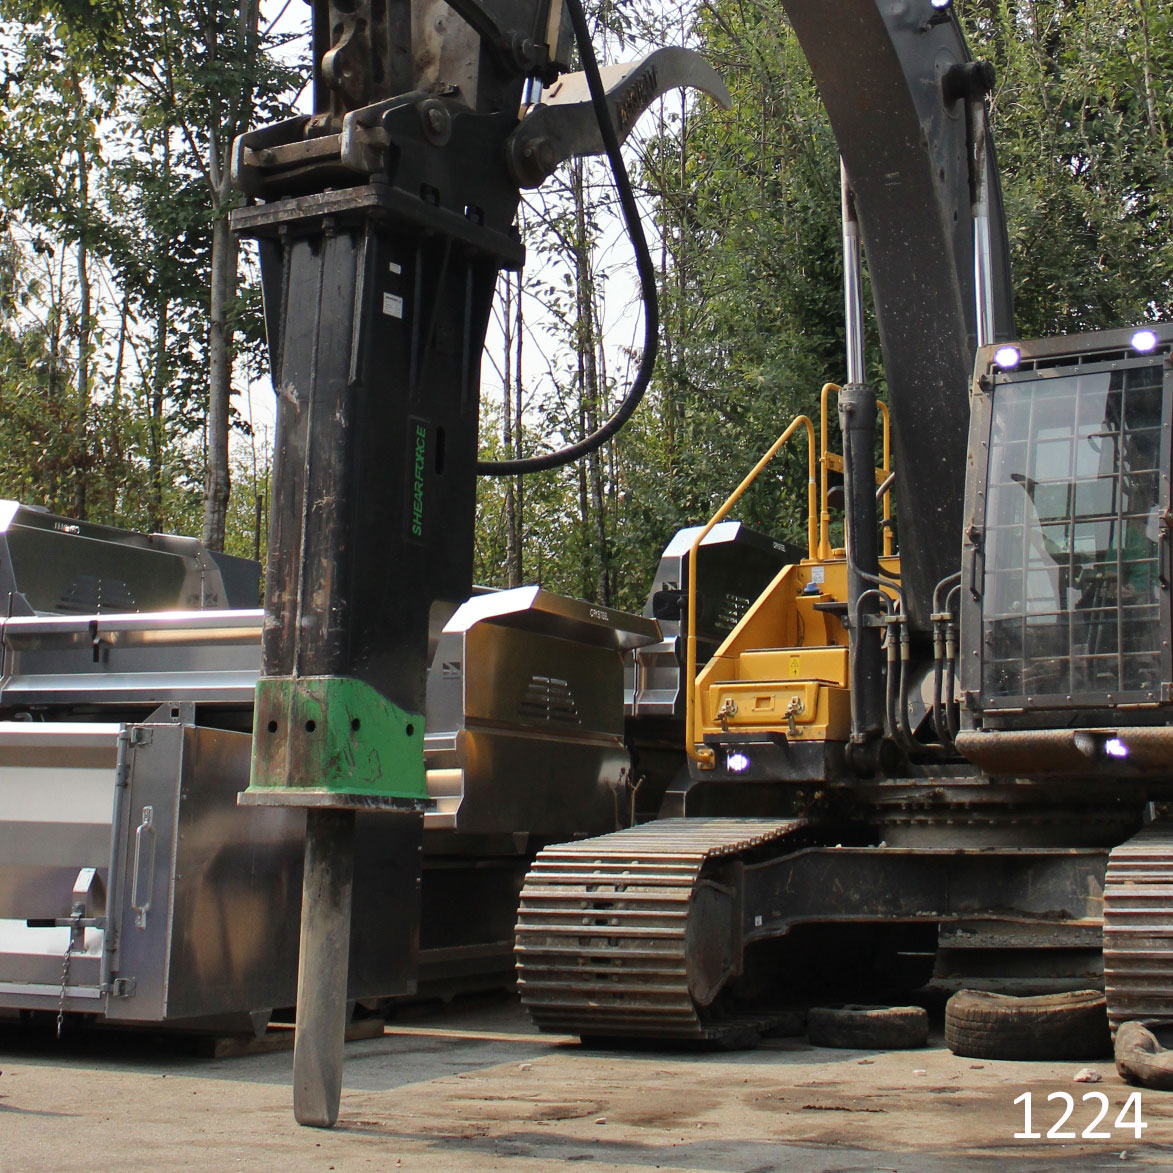 shearforce h155e hydraulic hammer excavator for sale used